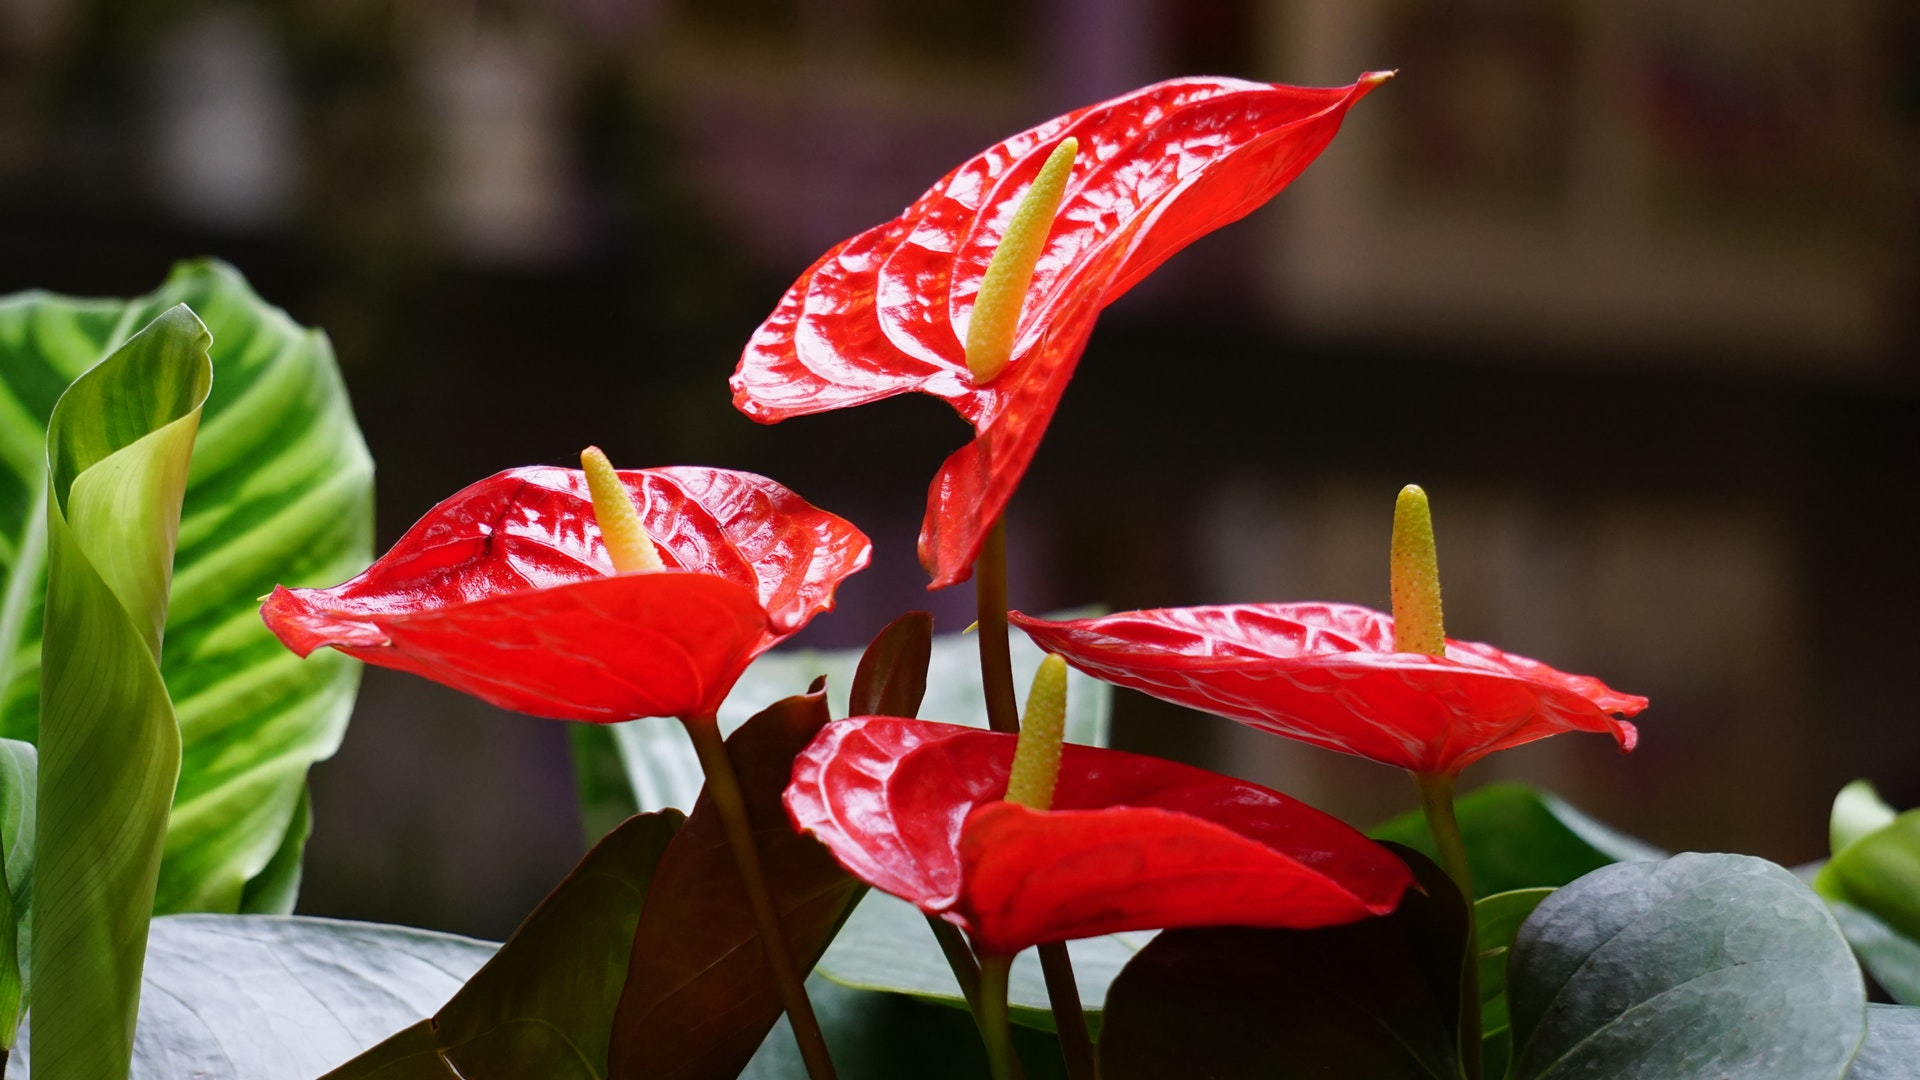 closeup of red flower